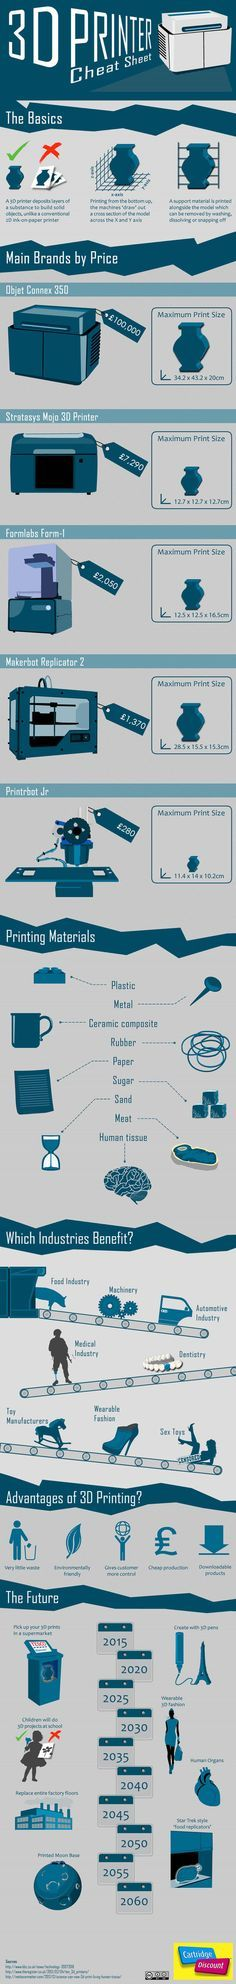 3D Printing 101: How It Works & Potential Applications